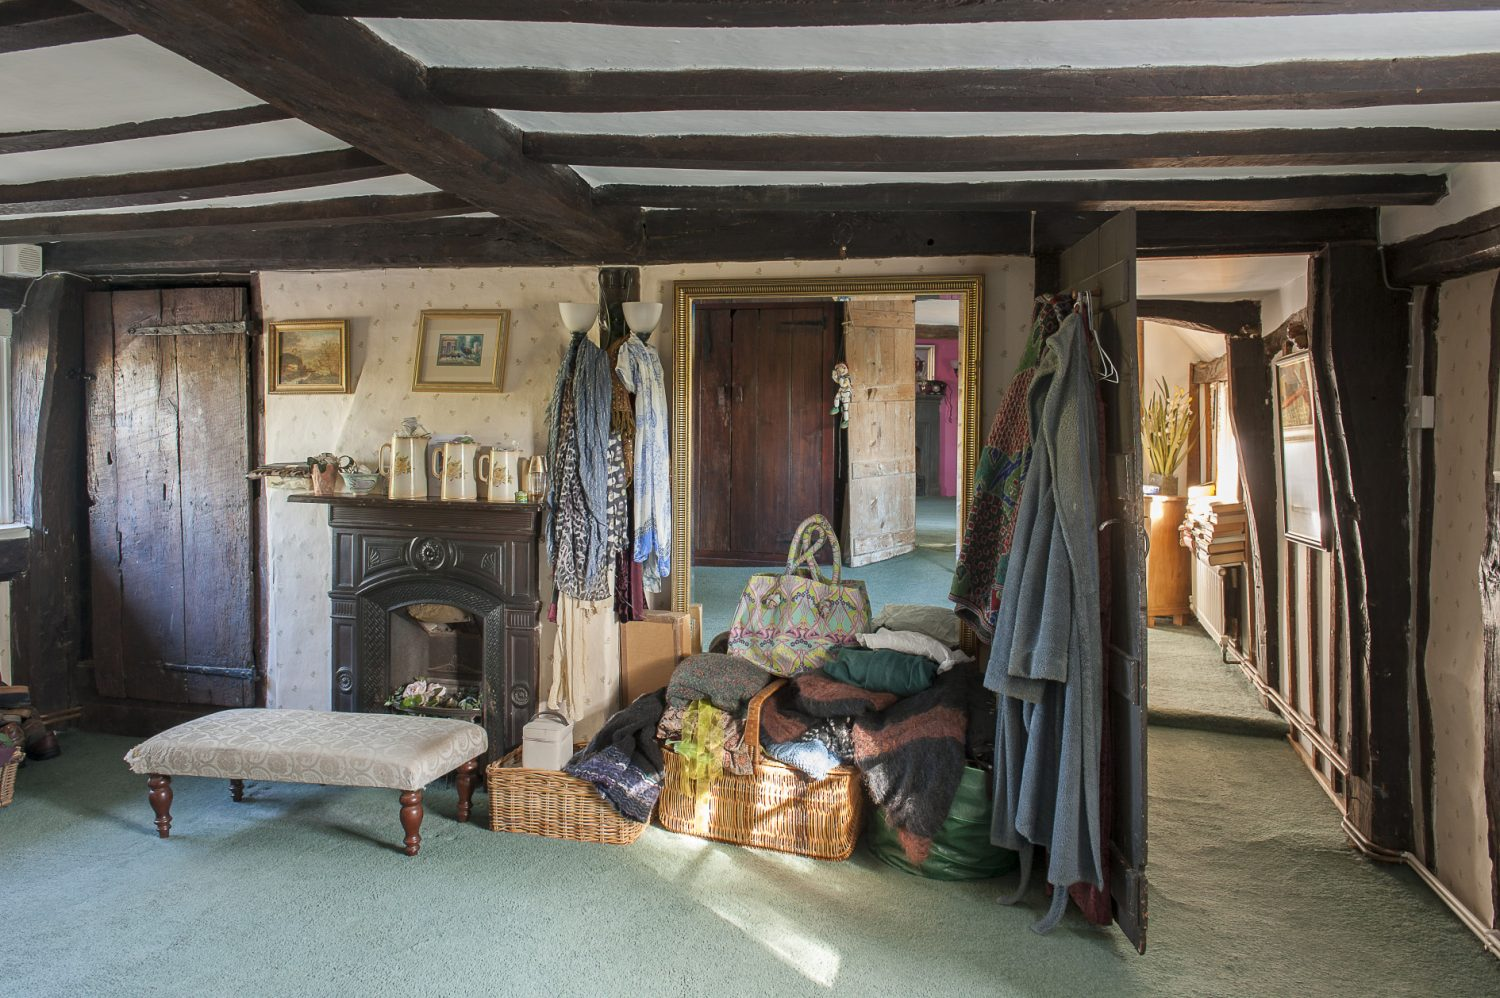 Upstairs, Tim and Eve use the large space outside the bedroom as a dressing room